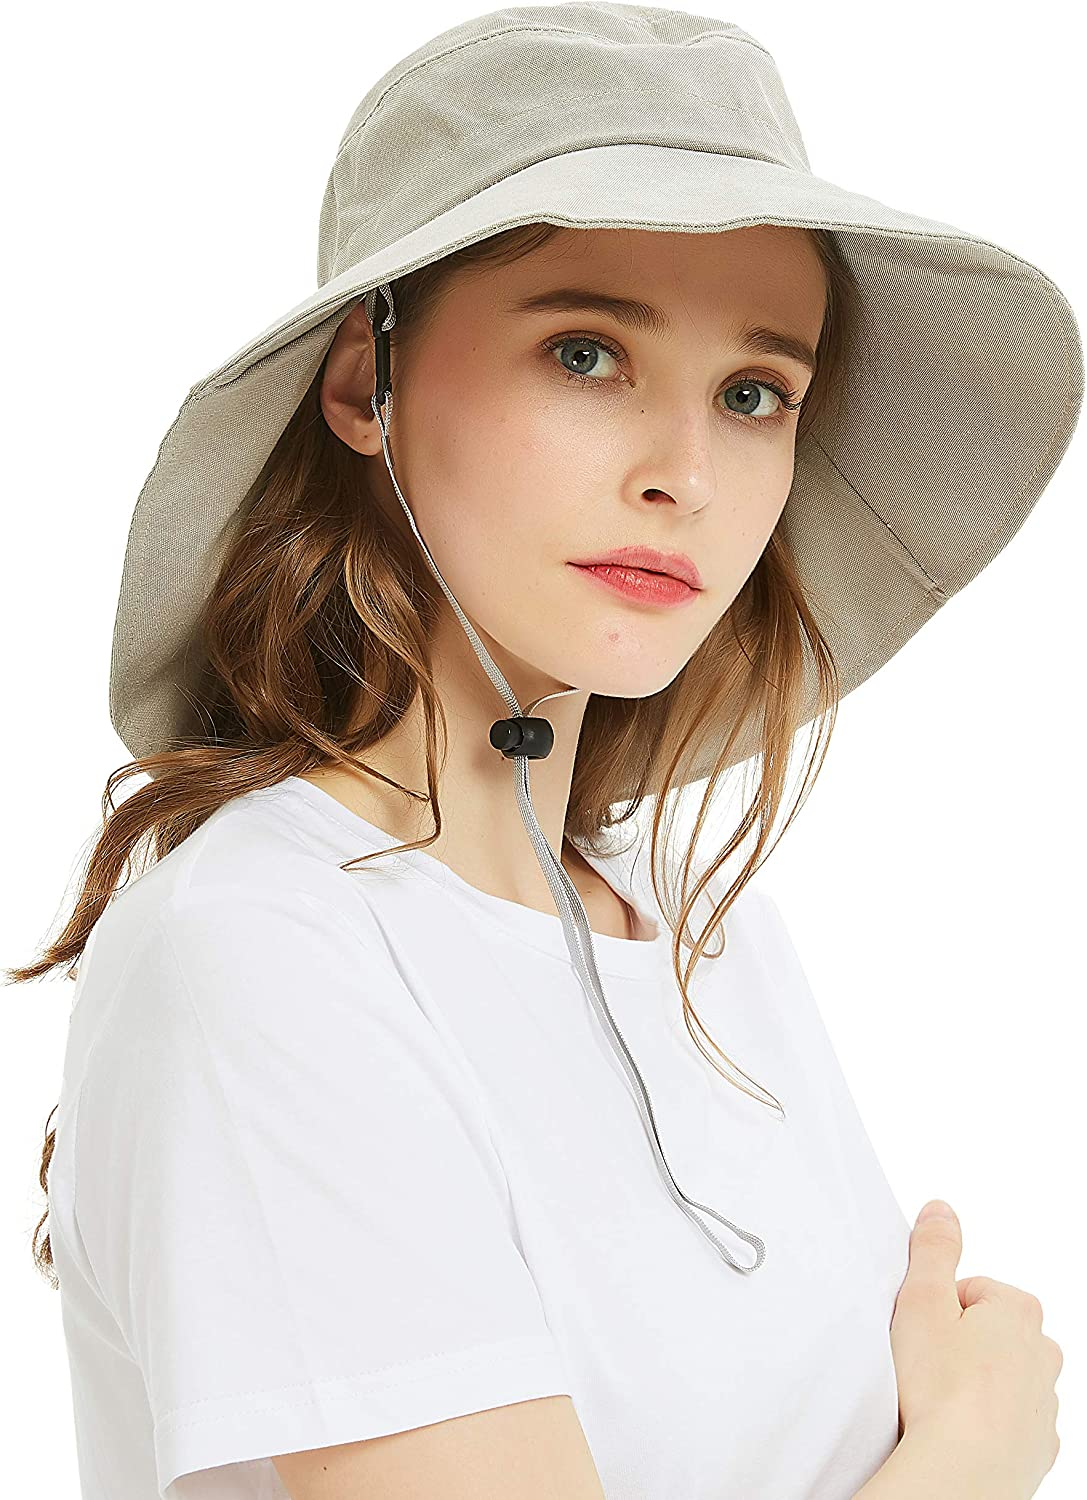 Headshion Fishing Hats for Women, Wide Brim UV Protection Sun Hats Foldable Boonie Bucket Hat with Neck Flap for Fishing Safari Hiking Beach Golf